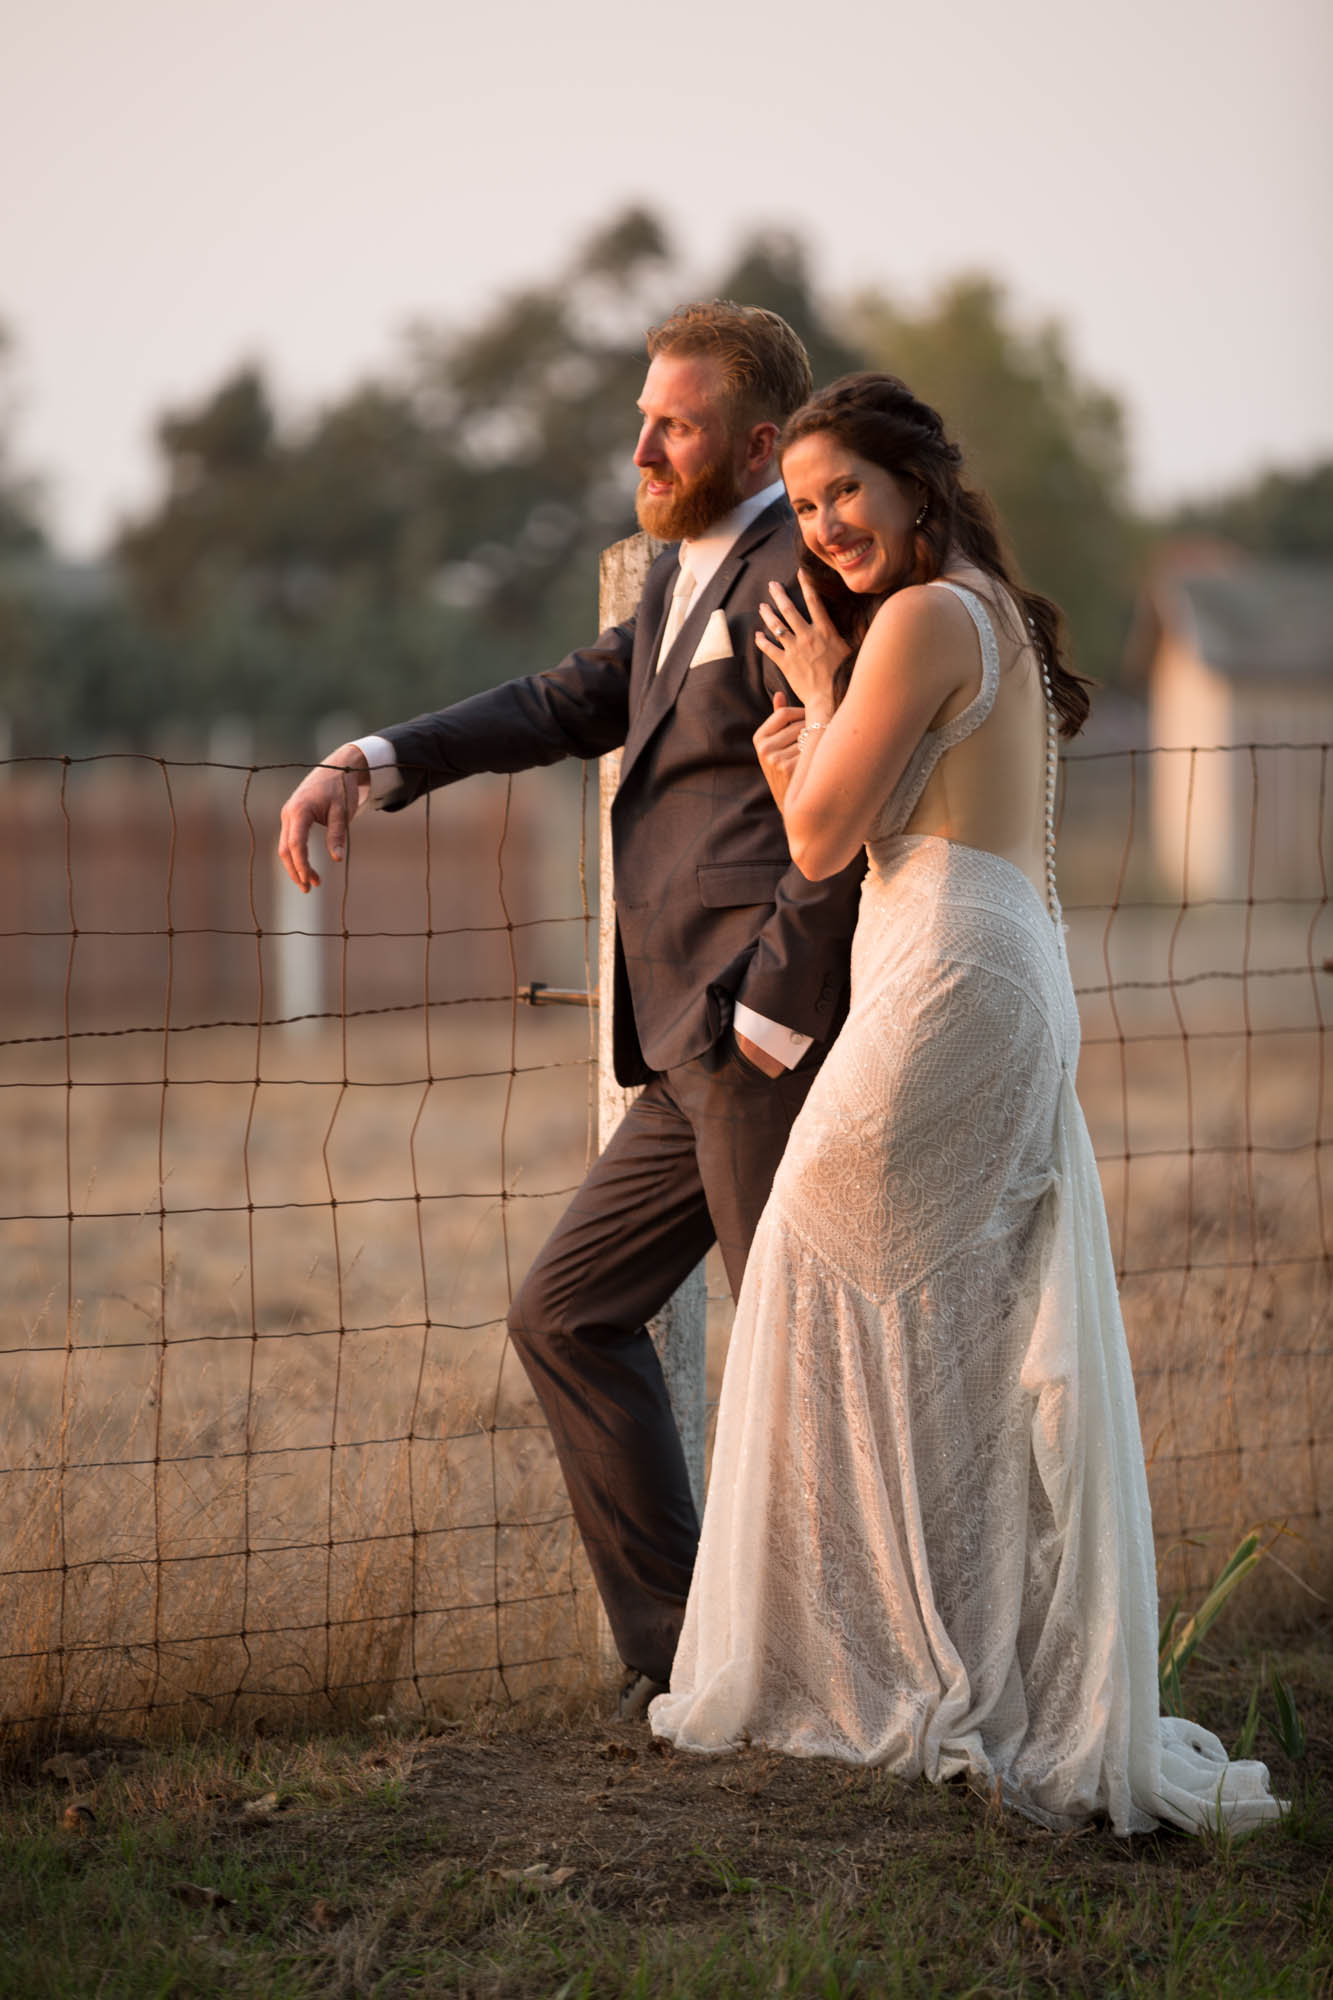 Bride hugs grooms arm while he leans on a country fence